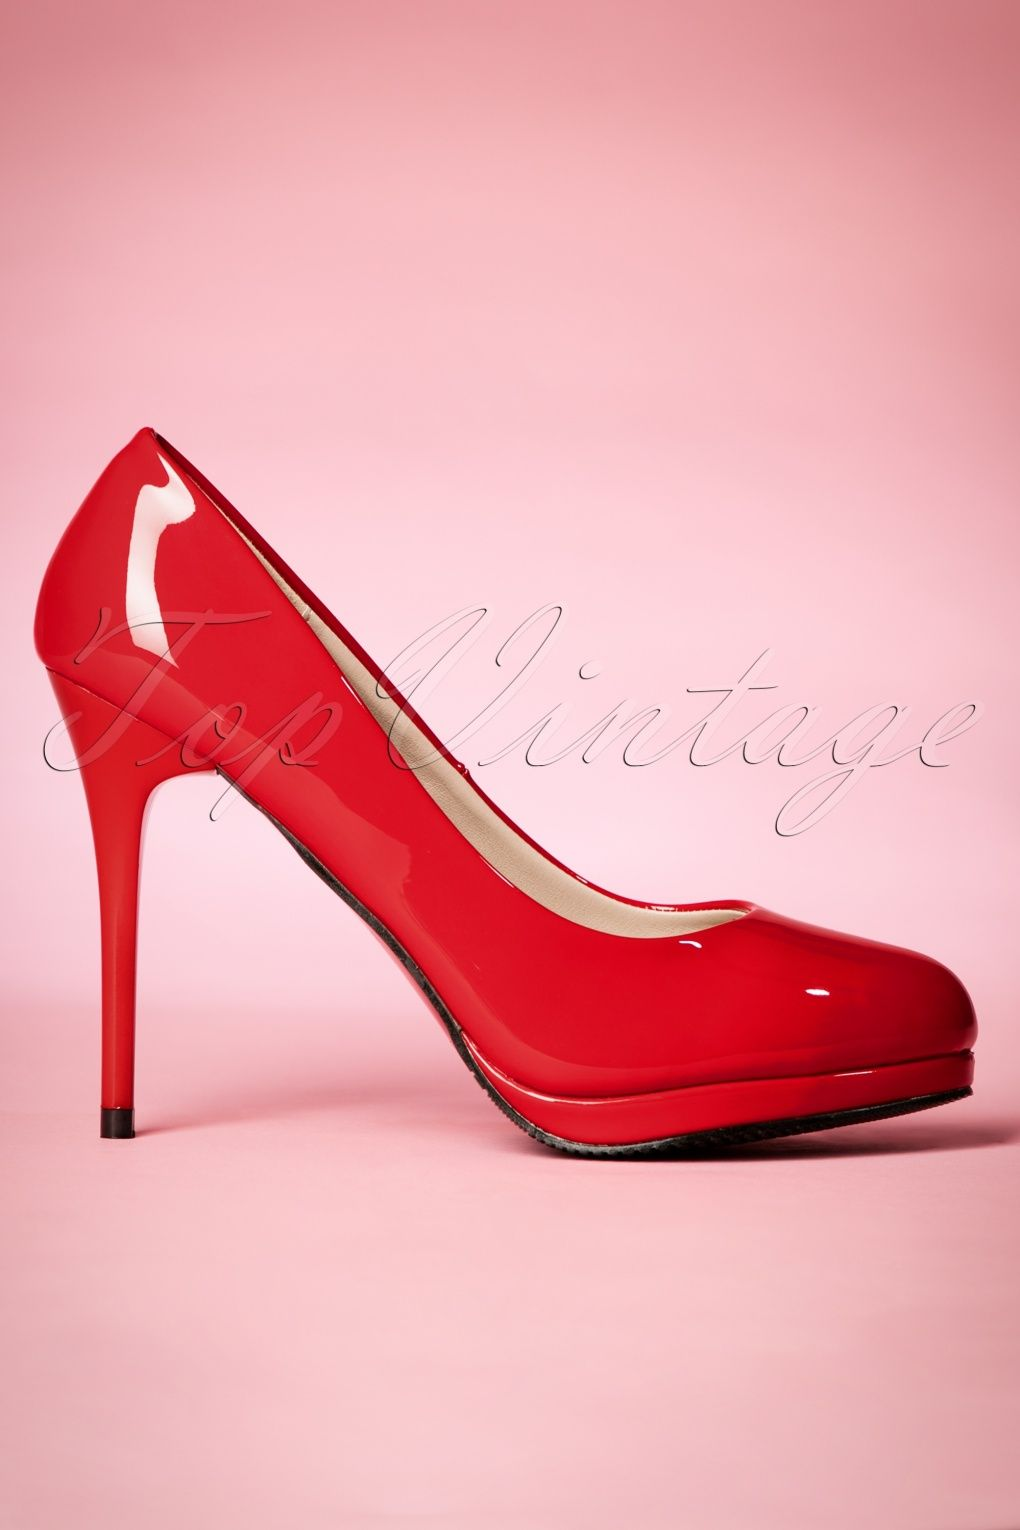 ed1eeda1391 These 50s Manhattan Lacquer Pumps are so classy and elegant! If Cinderella  had worn these